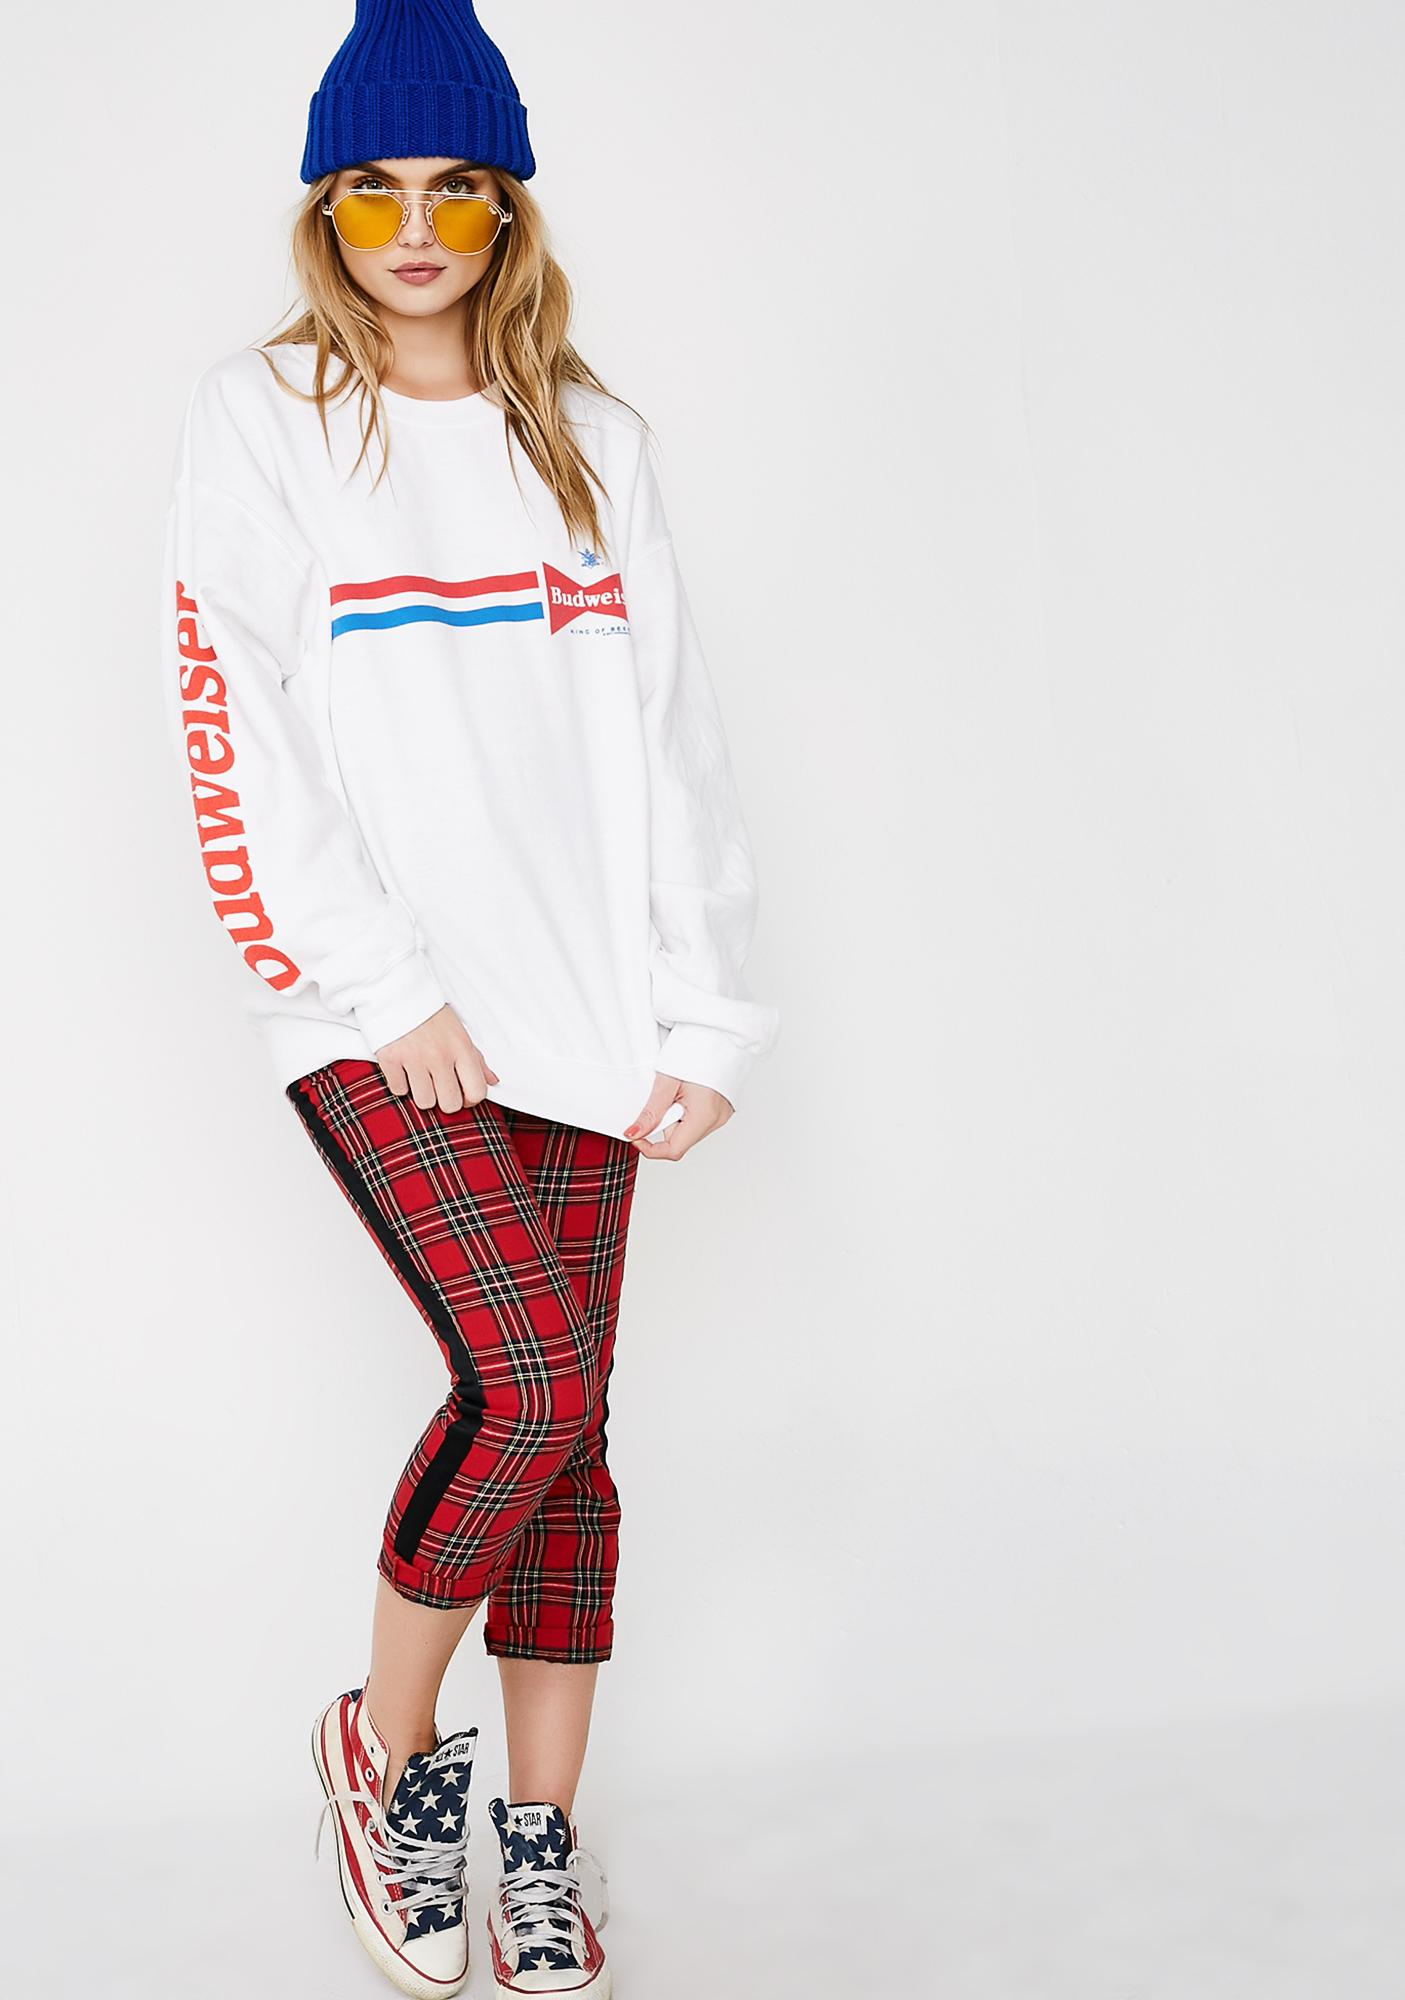 Junk Food Clothing Budweiser Stripes Sweatshirt